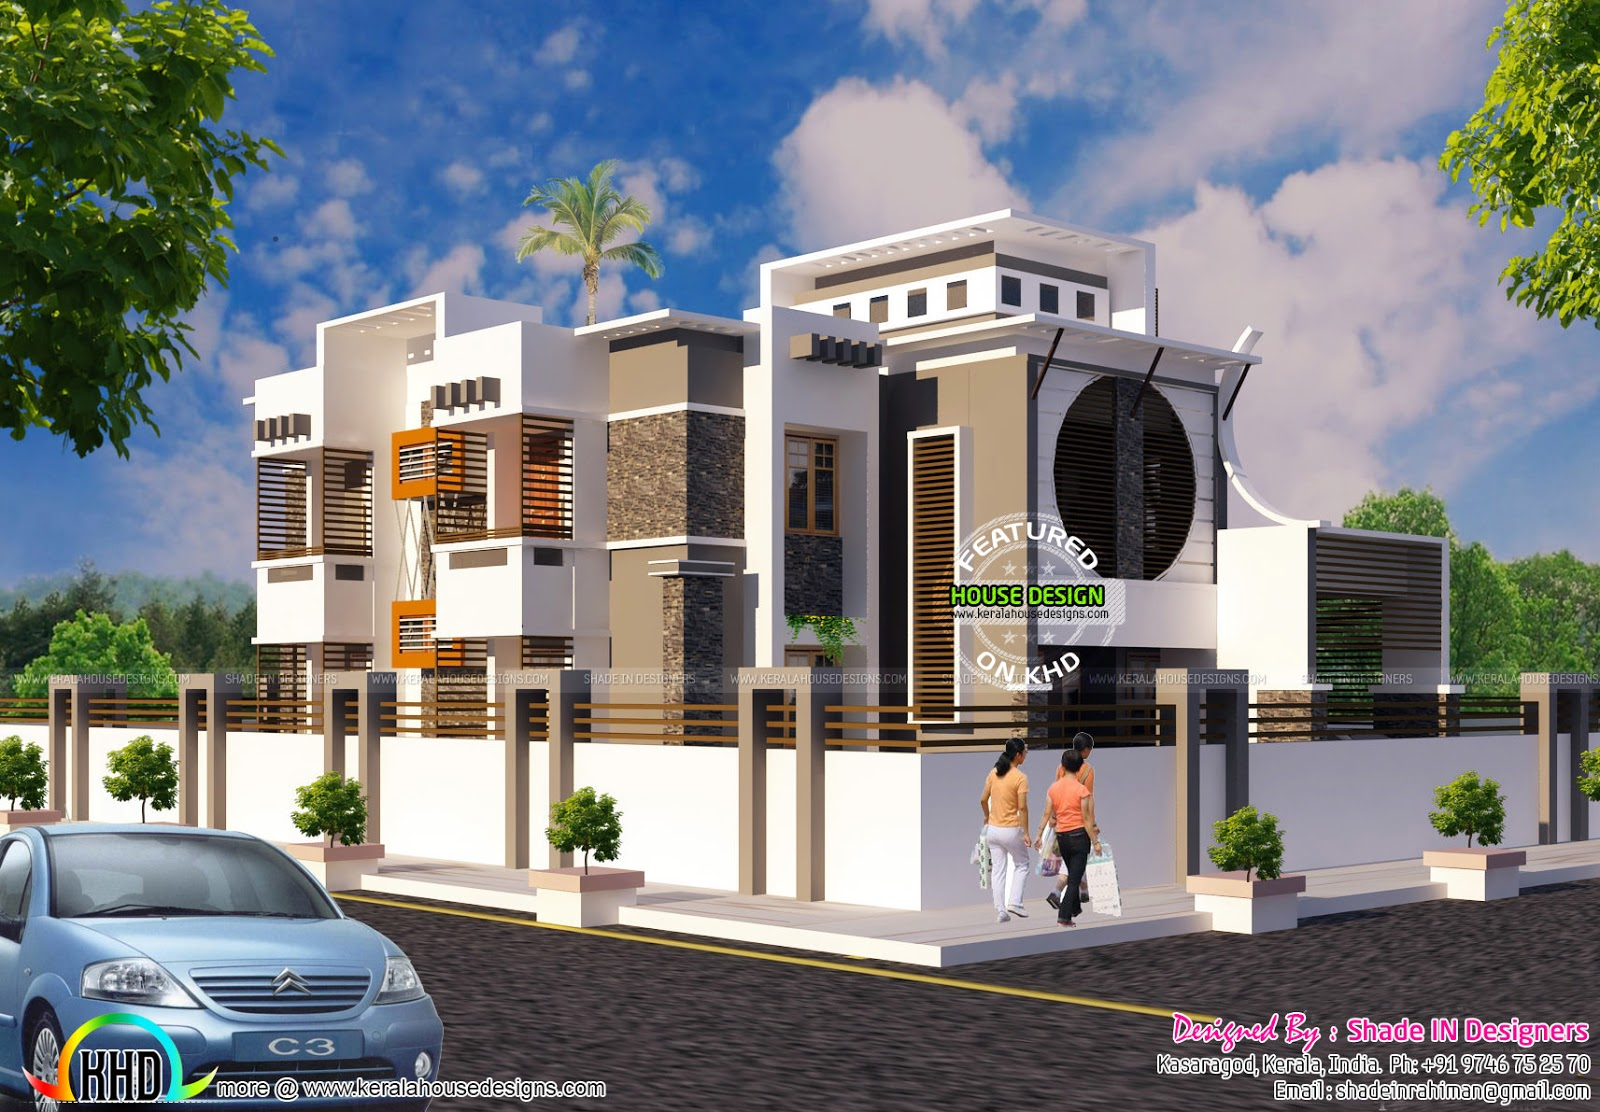 Ground floor 1745 sq ft first floor 1461 sq ft portico 191 sq ft total area 3397 sq ft no of bedrooms 5 design style modern